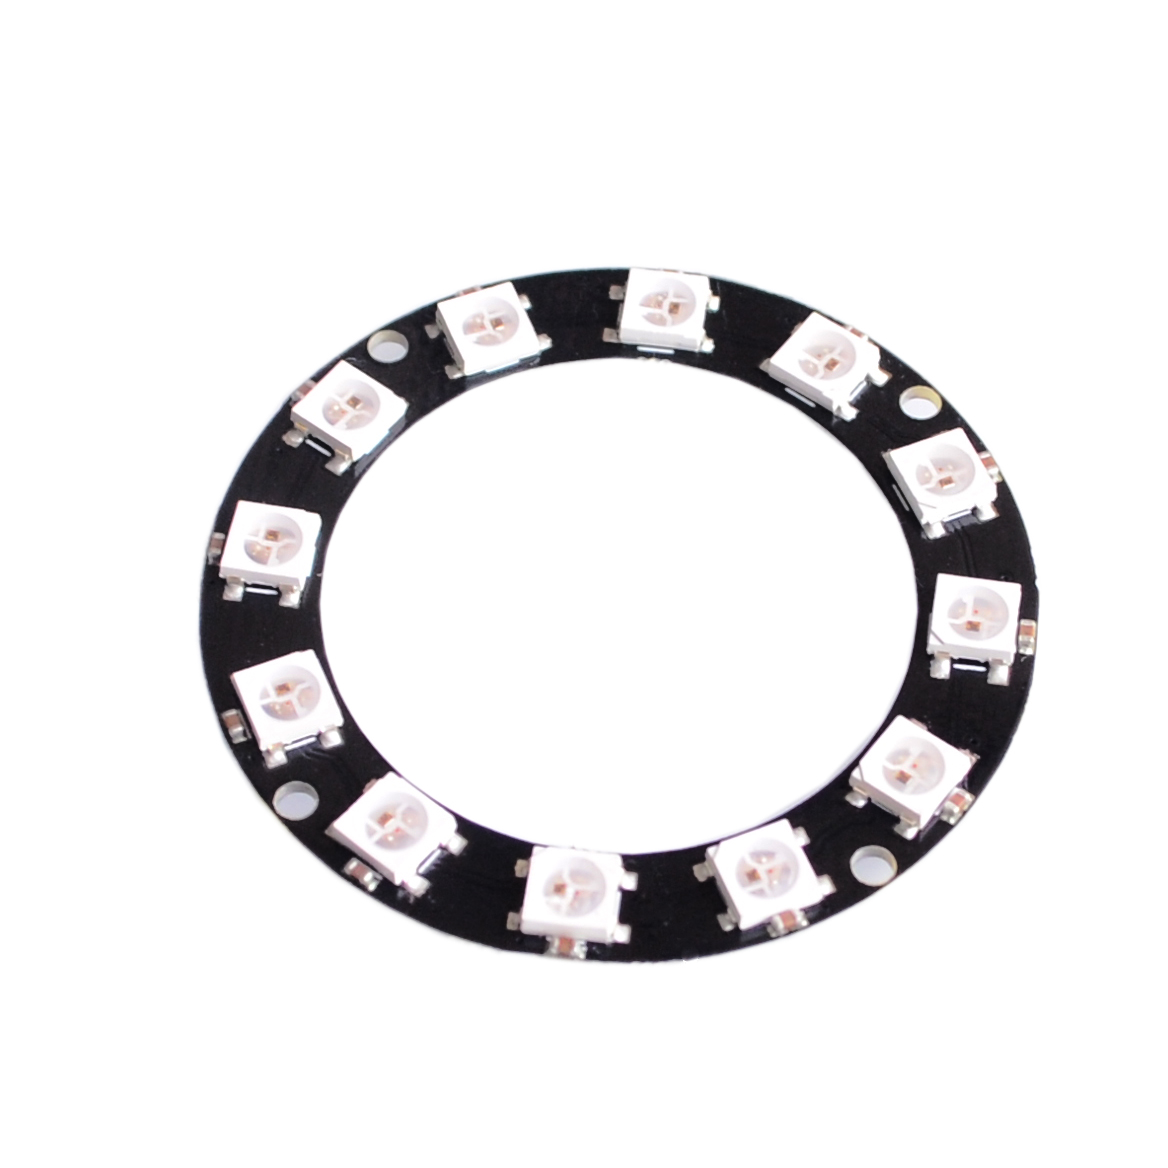 12 Bits 12 X WS2812 5050 RGB LED Ring Lamp Light with Integrated Drivers